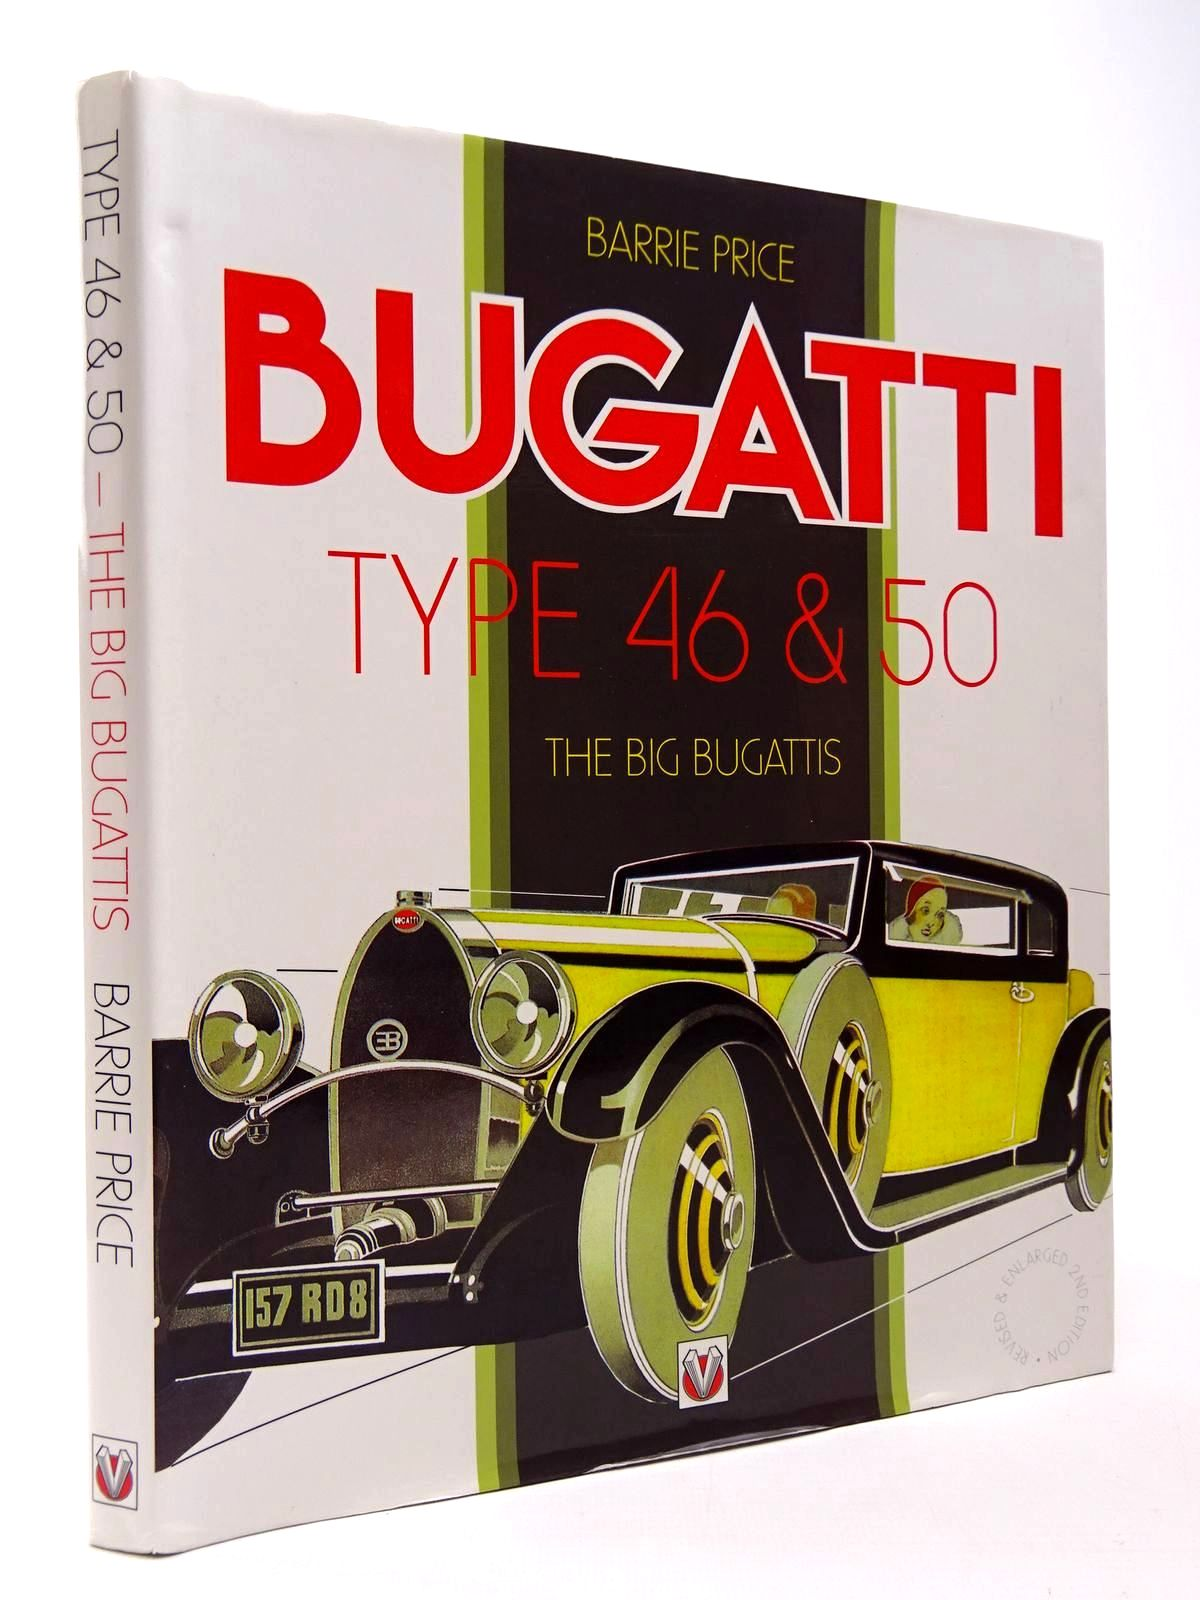 Photo of BUGATTI TYPE 46 & 50 THE BIG BUGATTIS written by Price, Barrie published by Veloce Publishing Plc. (STOCK CODE: 2129950)  for sale by Stella & Rose's Books